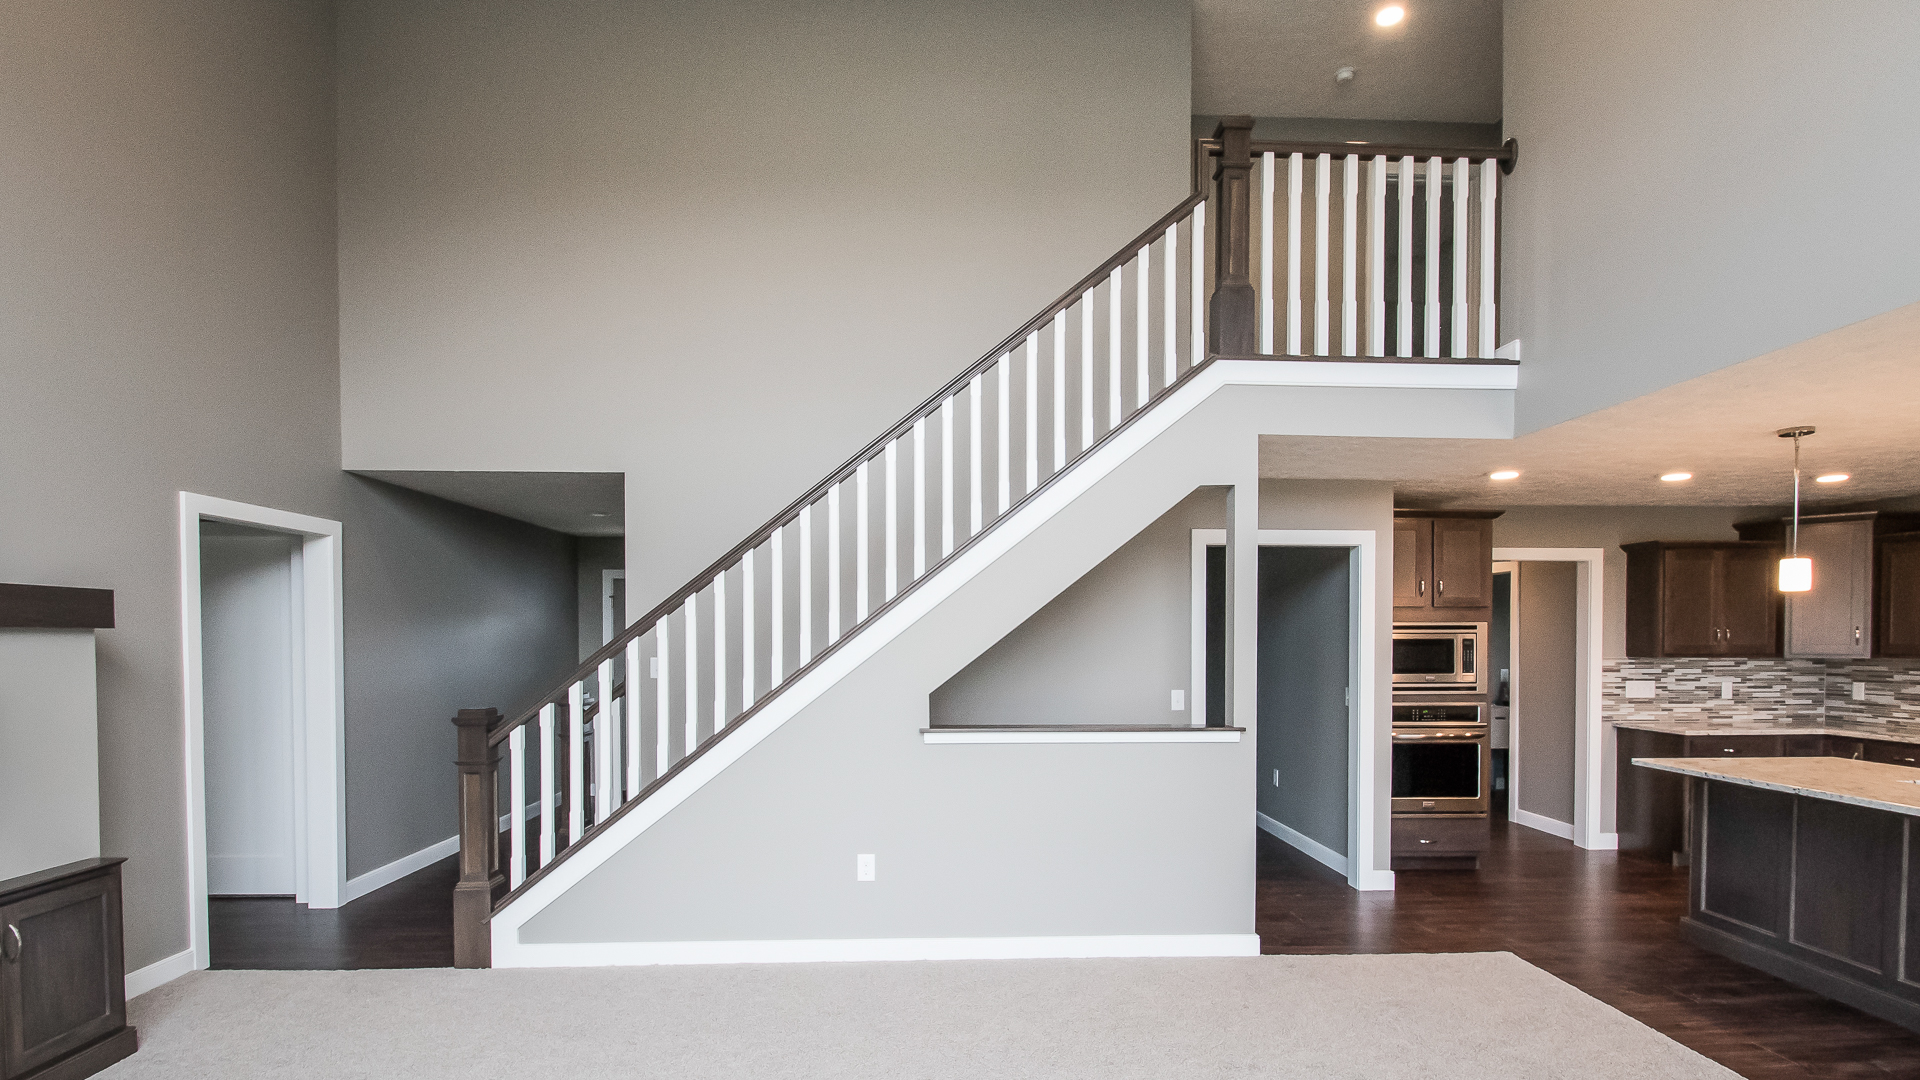 Stairs   Stained Railings And Flat Panel Box Newel Posts, Painted  Skirtboards, Painted Square Chamfer Balusters